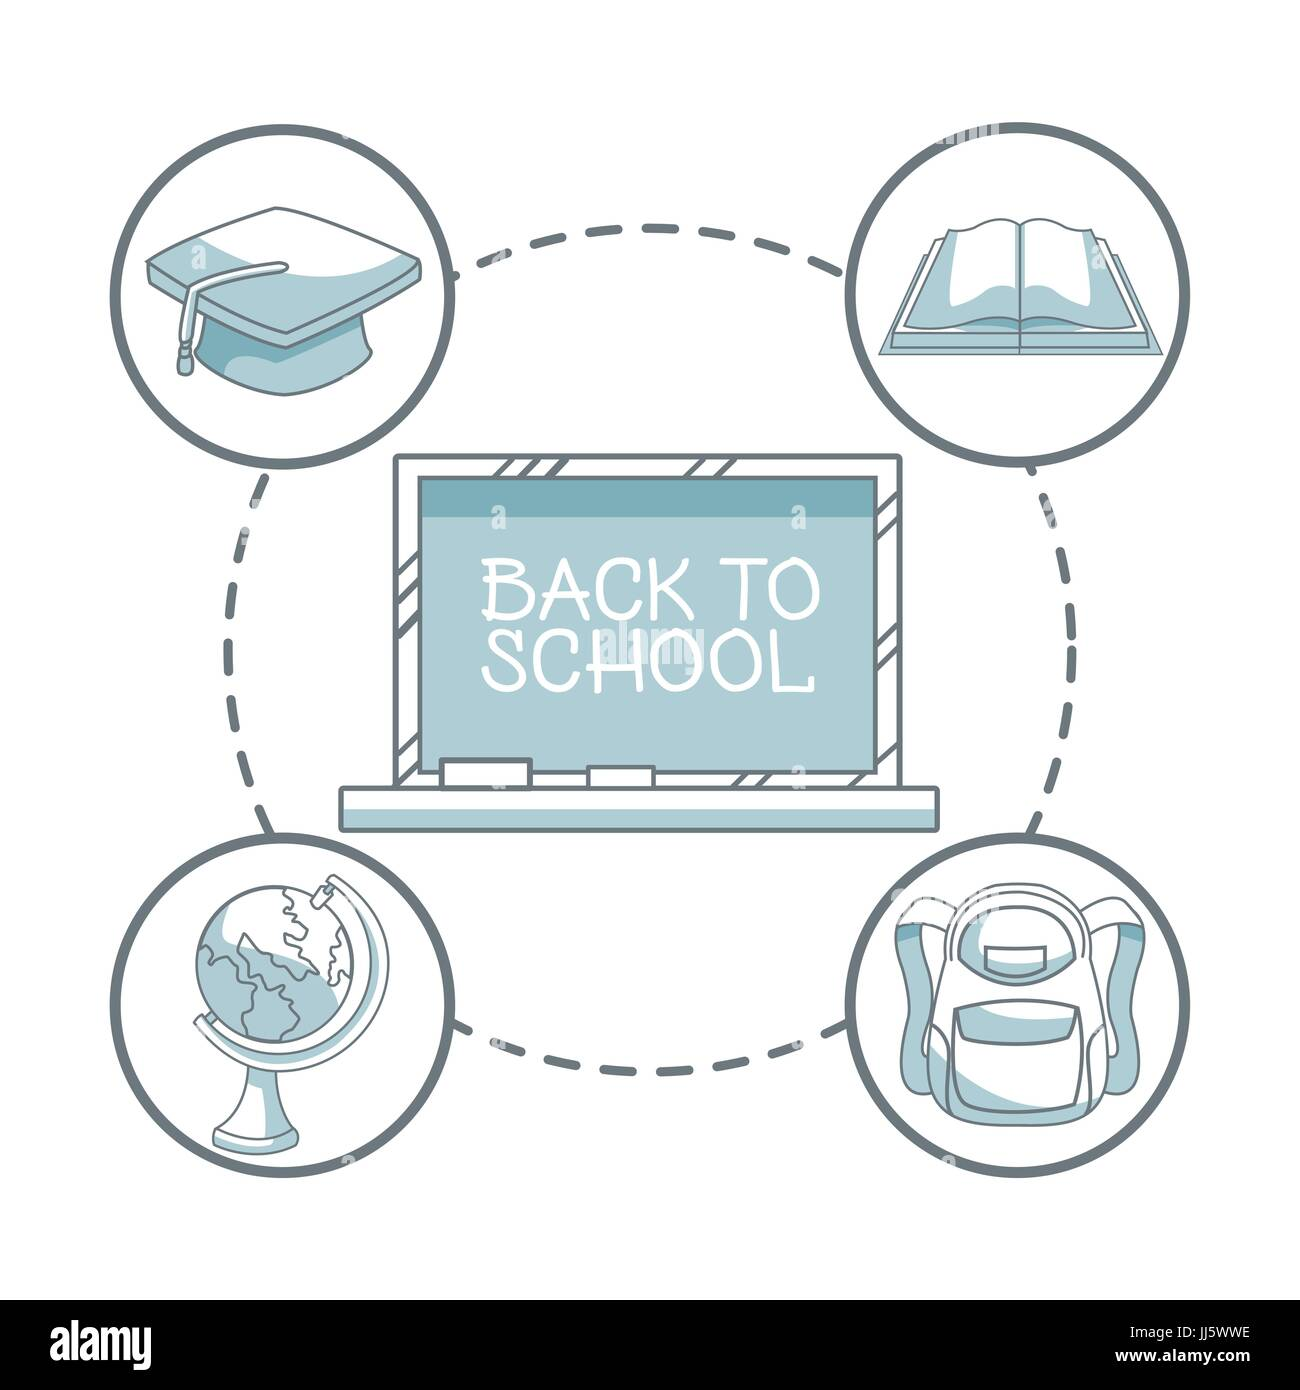 white background with color silhouette shading of chalk board with text back to school and icons elements academic - Stock Image